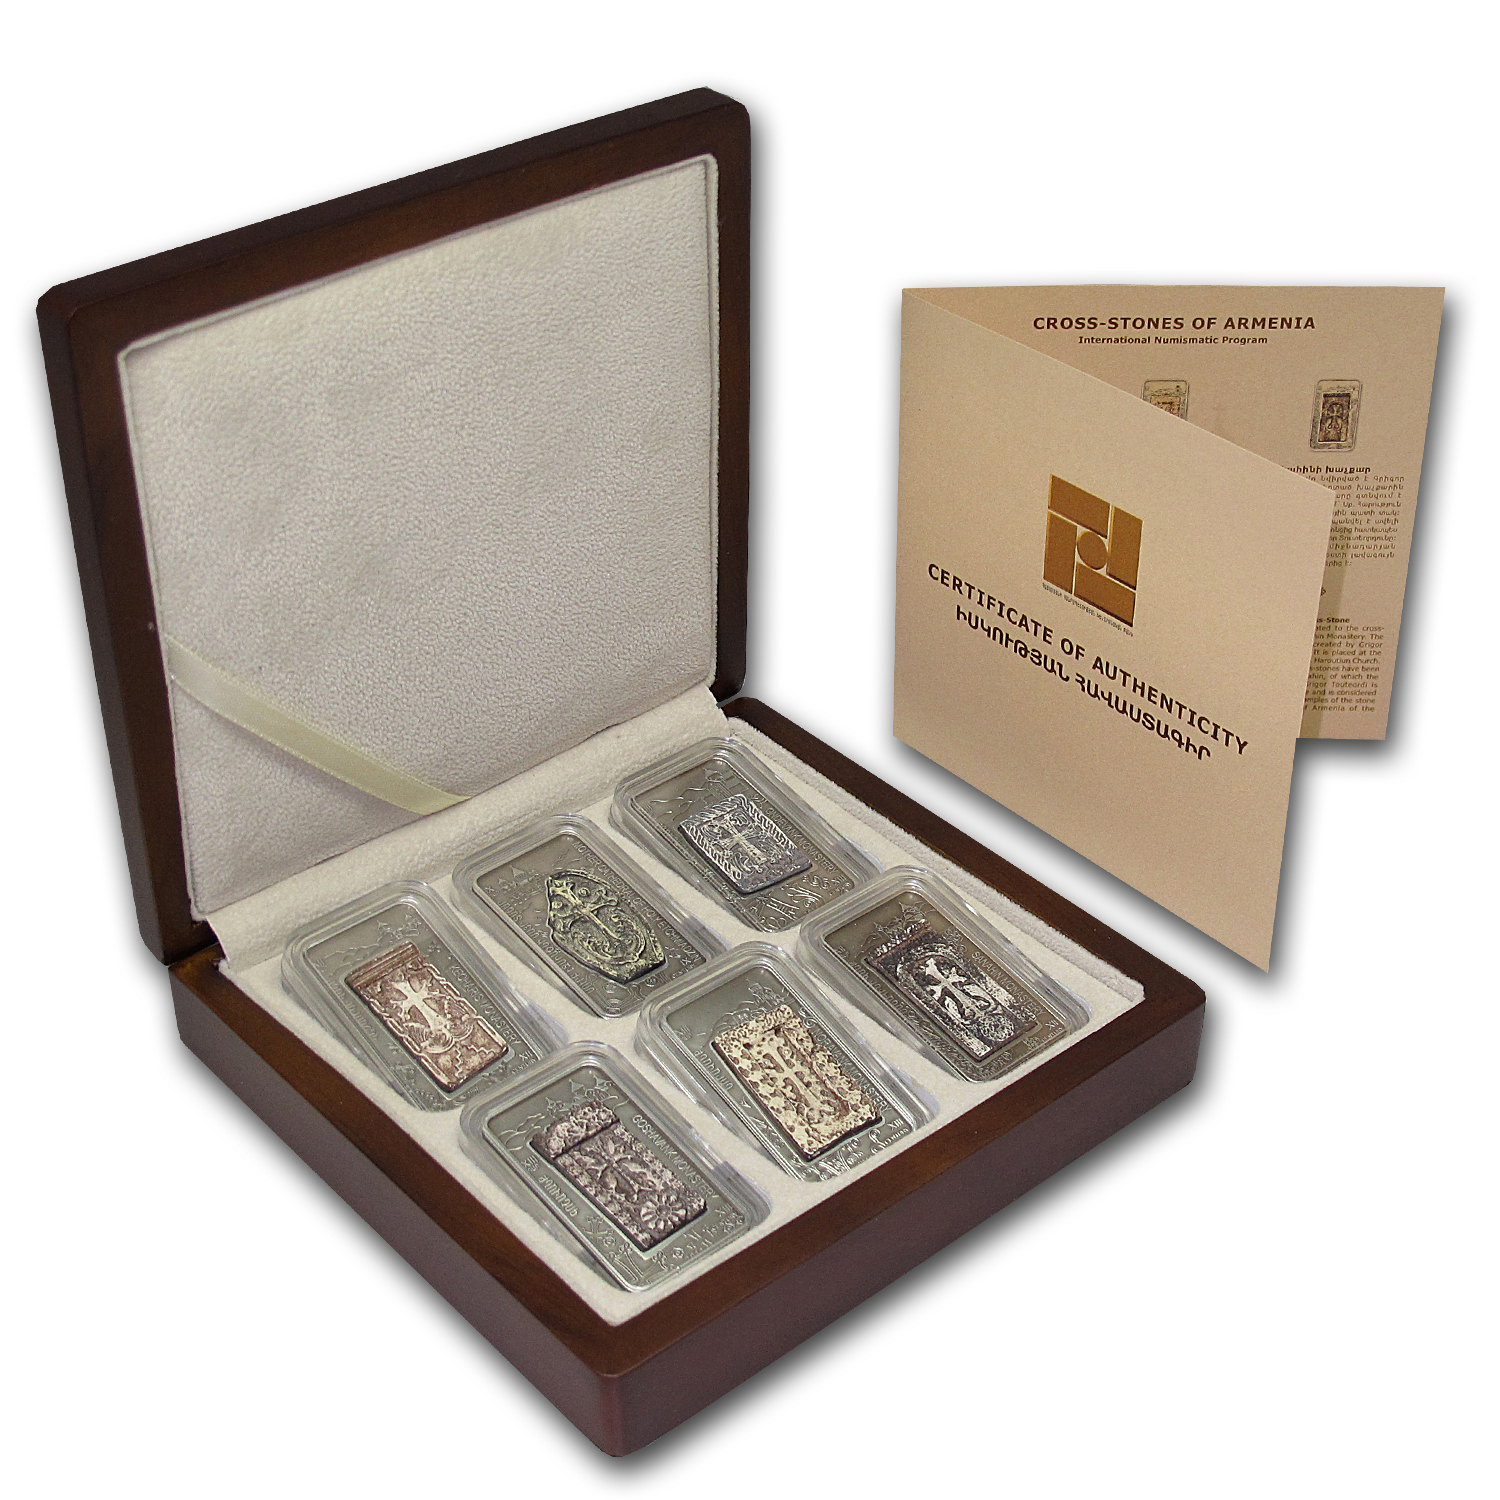 2011 Armenia 6-Coin 1000 Dram Cross-Stones of Armenia Set